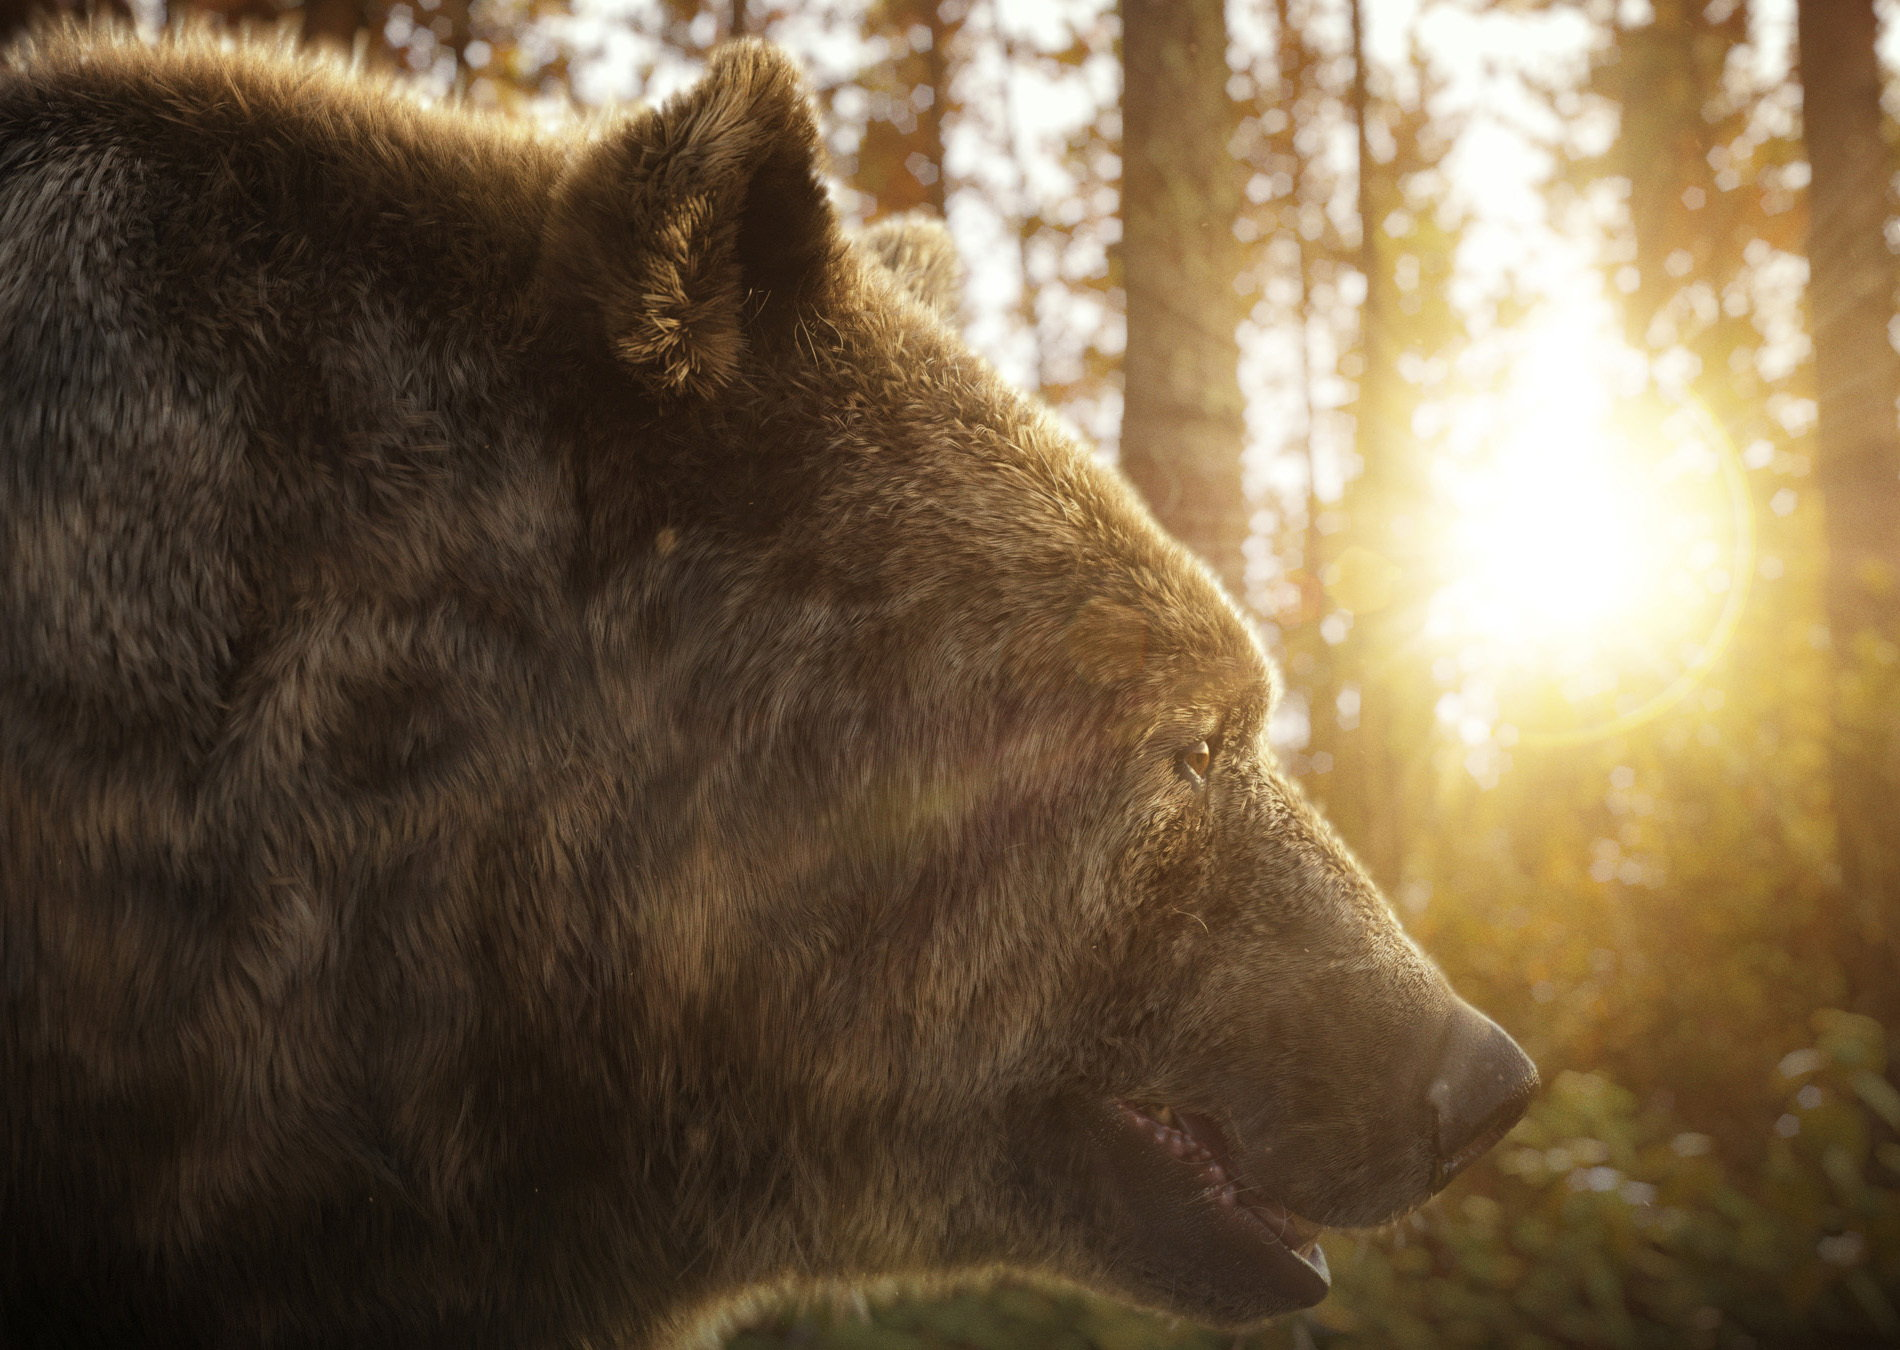 boom cgi bear in a forest